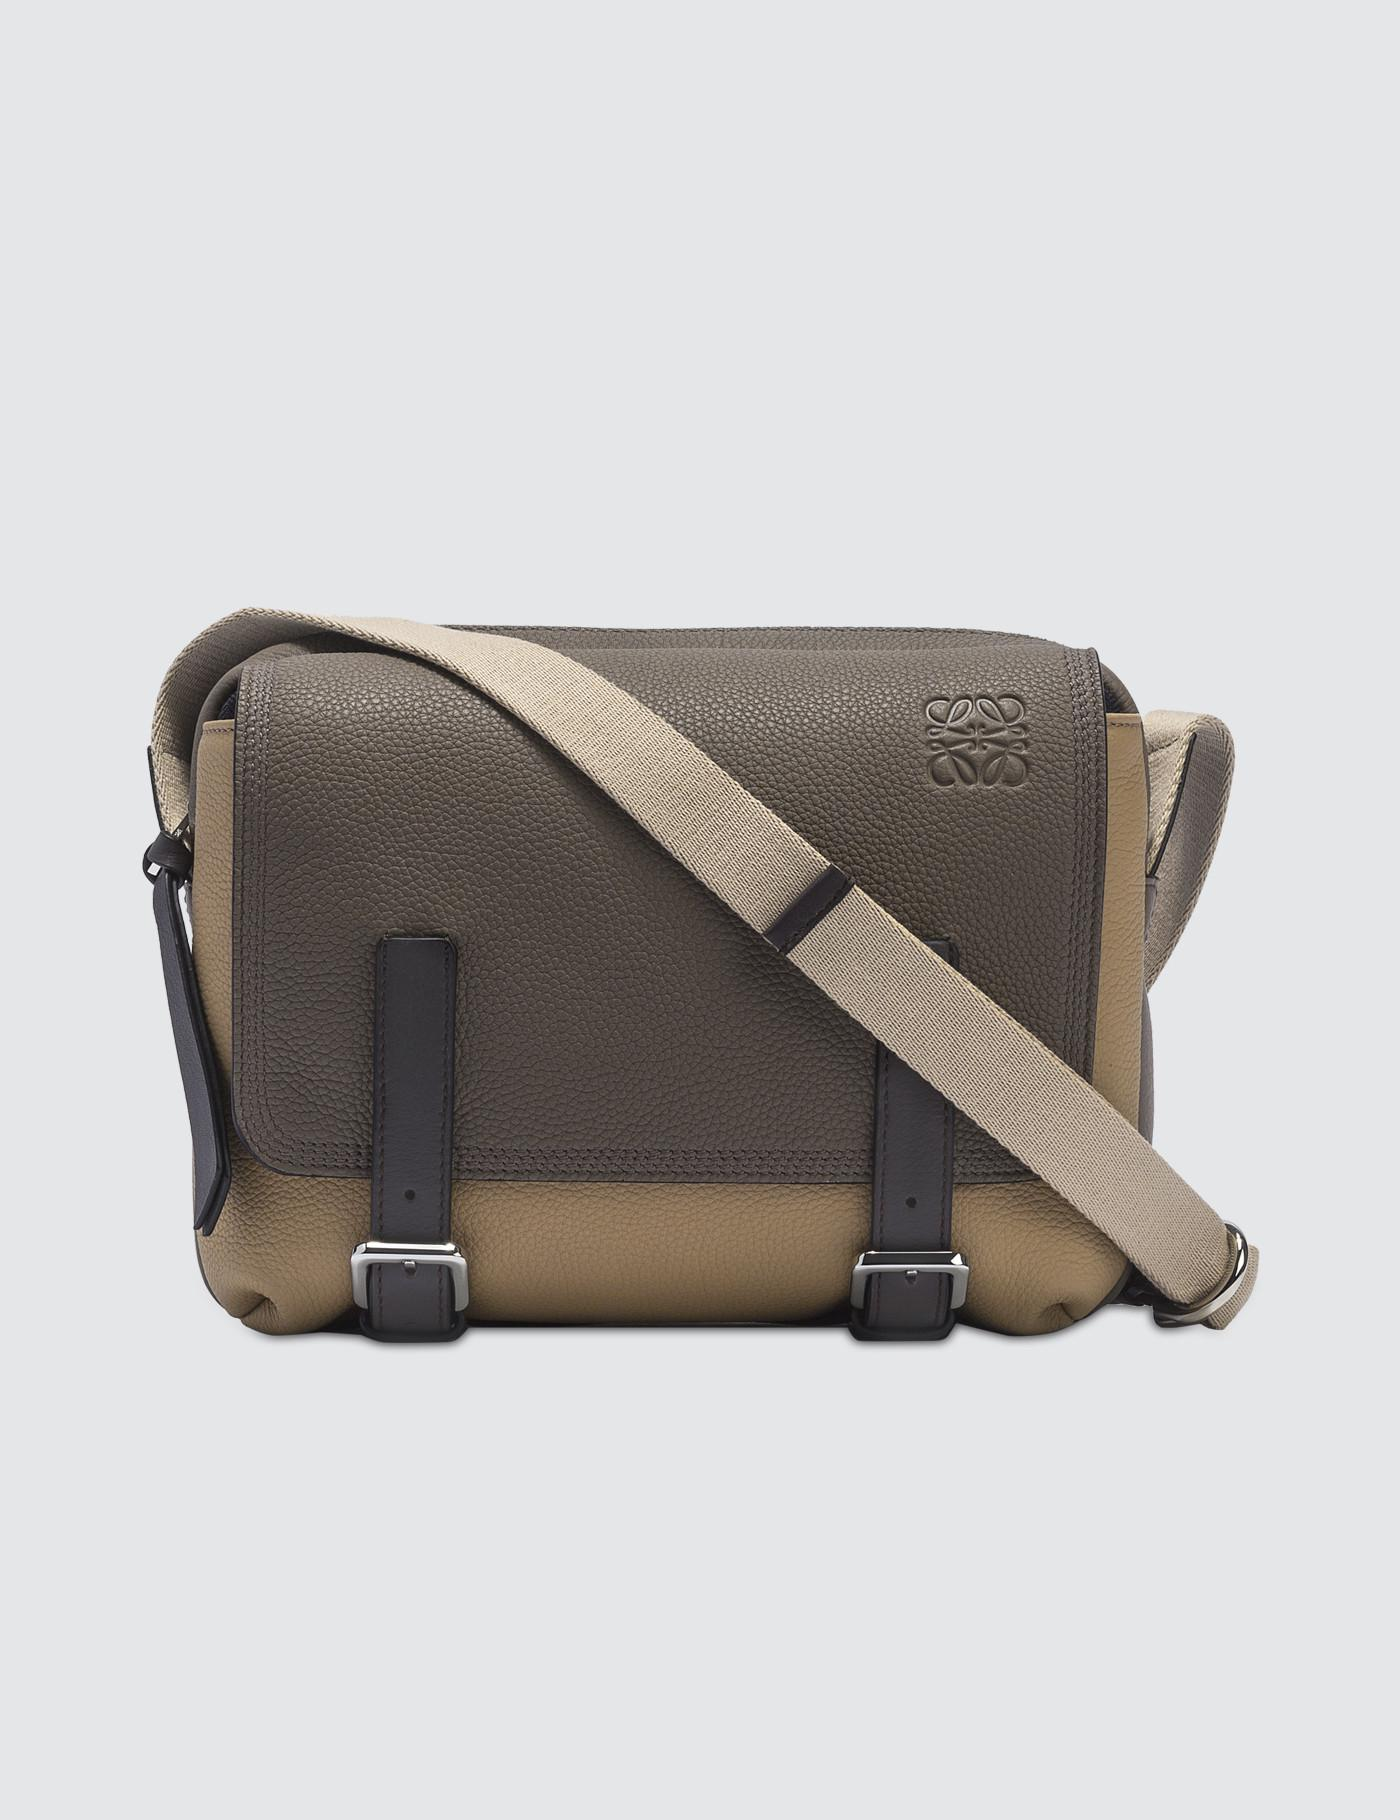 Loewe Military Messenger Xs Bag in Natural for Men - Save 25% - Lyst 3ab0502bf7